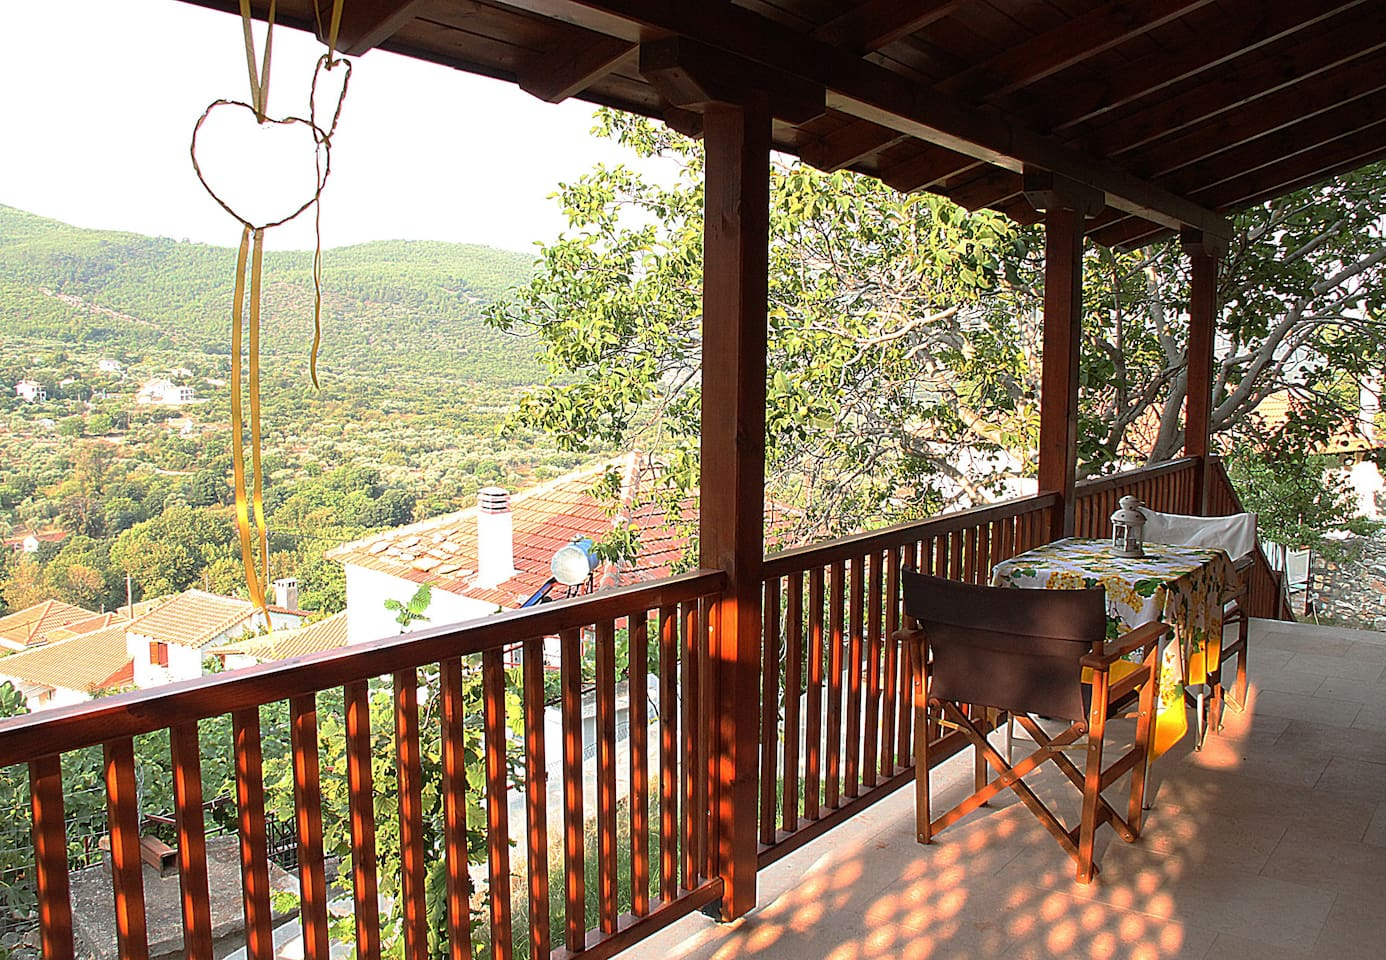 The Veranda with the view of Agios Georgios a traditional village